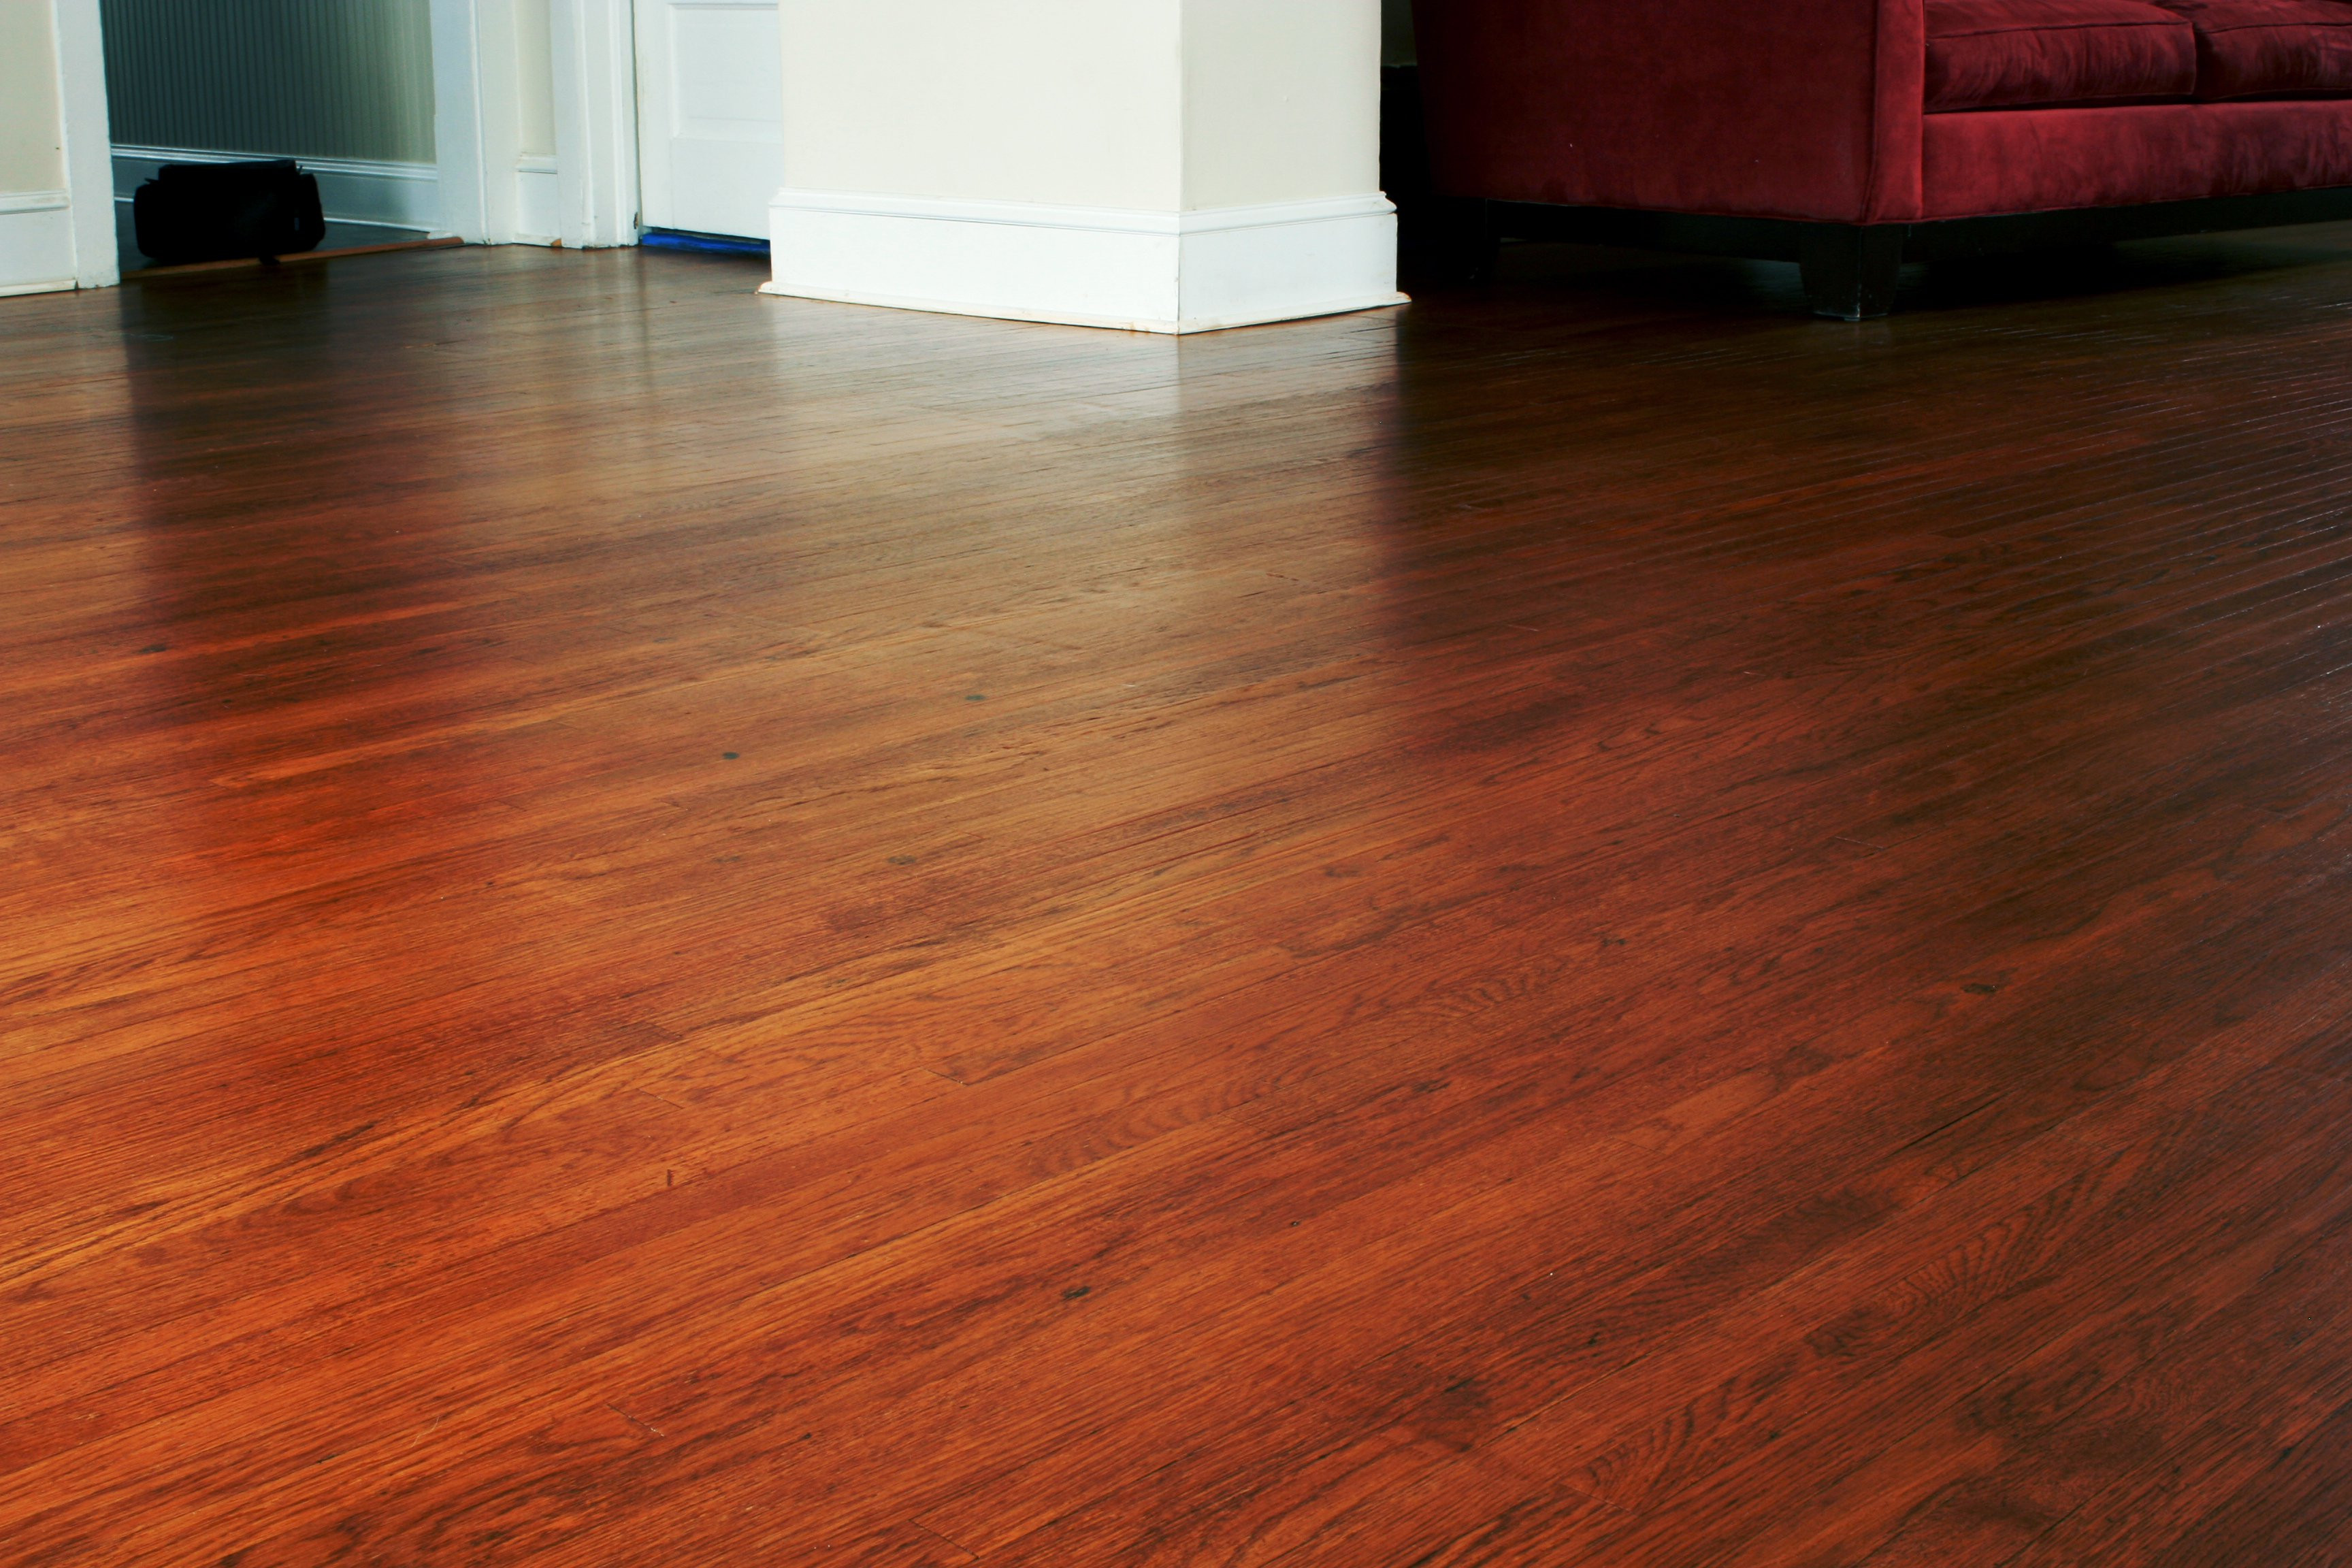 hardwood floor installers dallas tx of price floor vs price ceiling room suites of the hotel od barcelona for price floor vs price ceiling how to diagnose and repair sloping floors homeadvisor